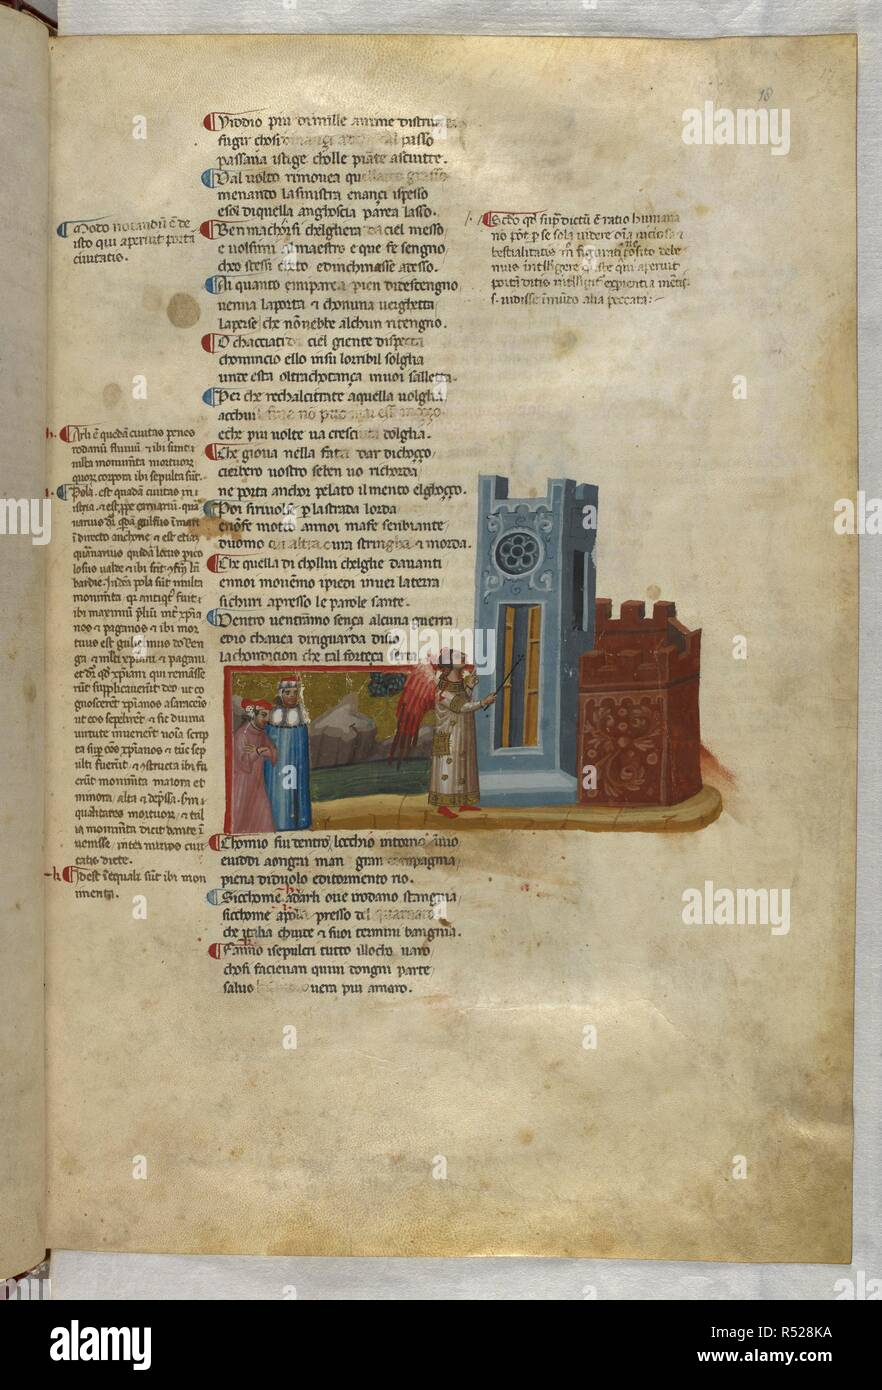 Inferno: He opens the gate of Dis. Dante Alighieri, Divina Commedia ( The Divine Comedy ), with a commentary in Latin. 1st half of the 14th century. Source: Egerton 943, f.18. Language: Italian, Latin. - Stock Image